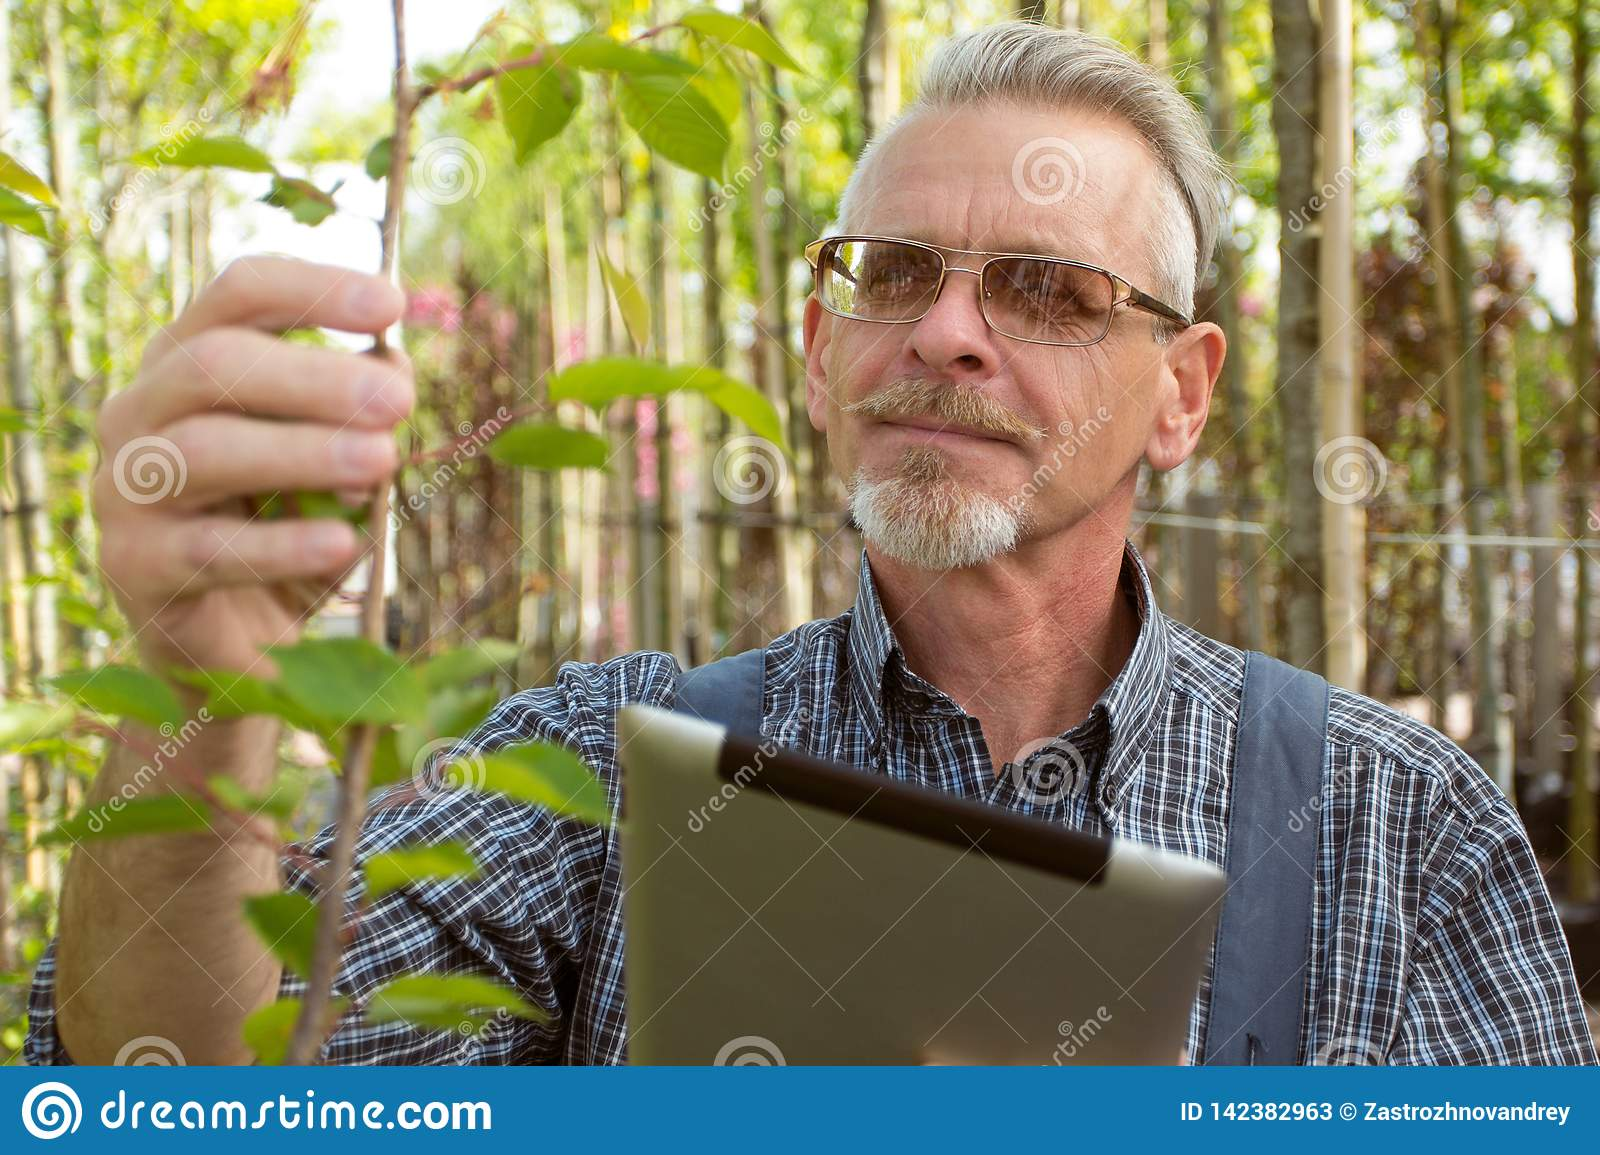 Adult gardener in the garden shop inspects plants. In the glasses, a beard, wearing overalls